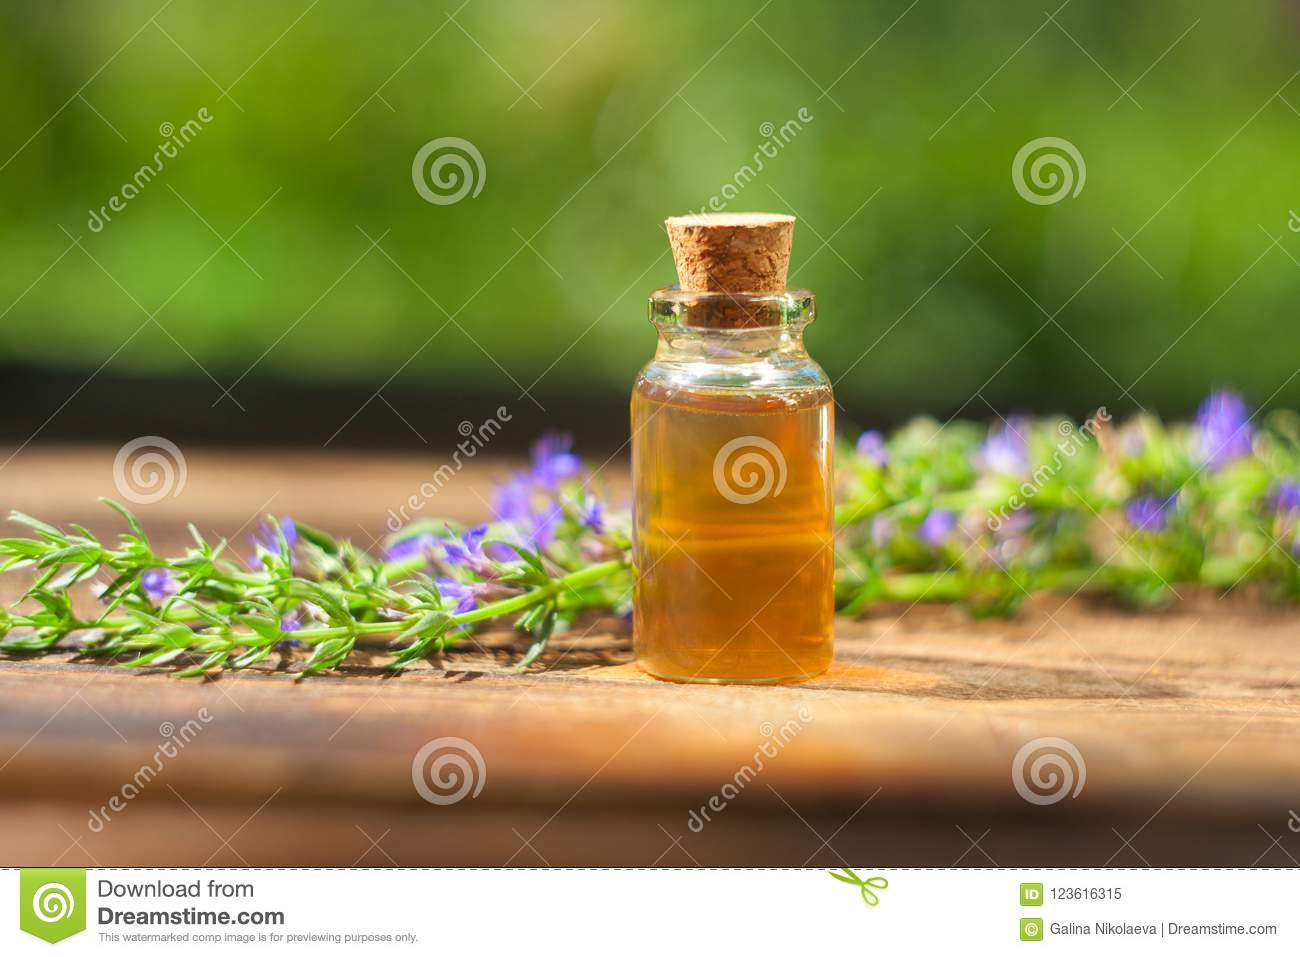 Hyssop essential oil in beautiful bottle on table